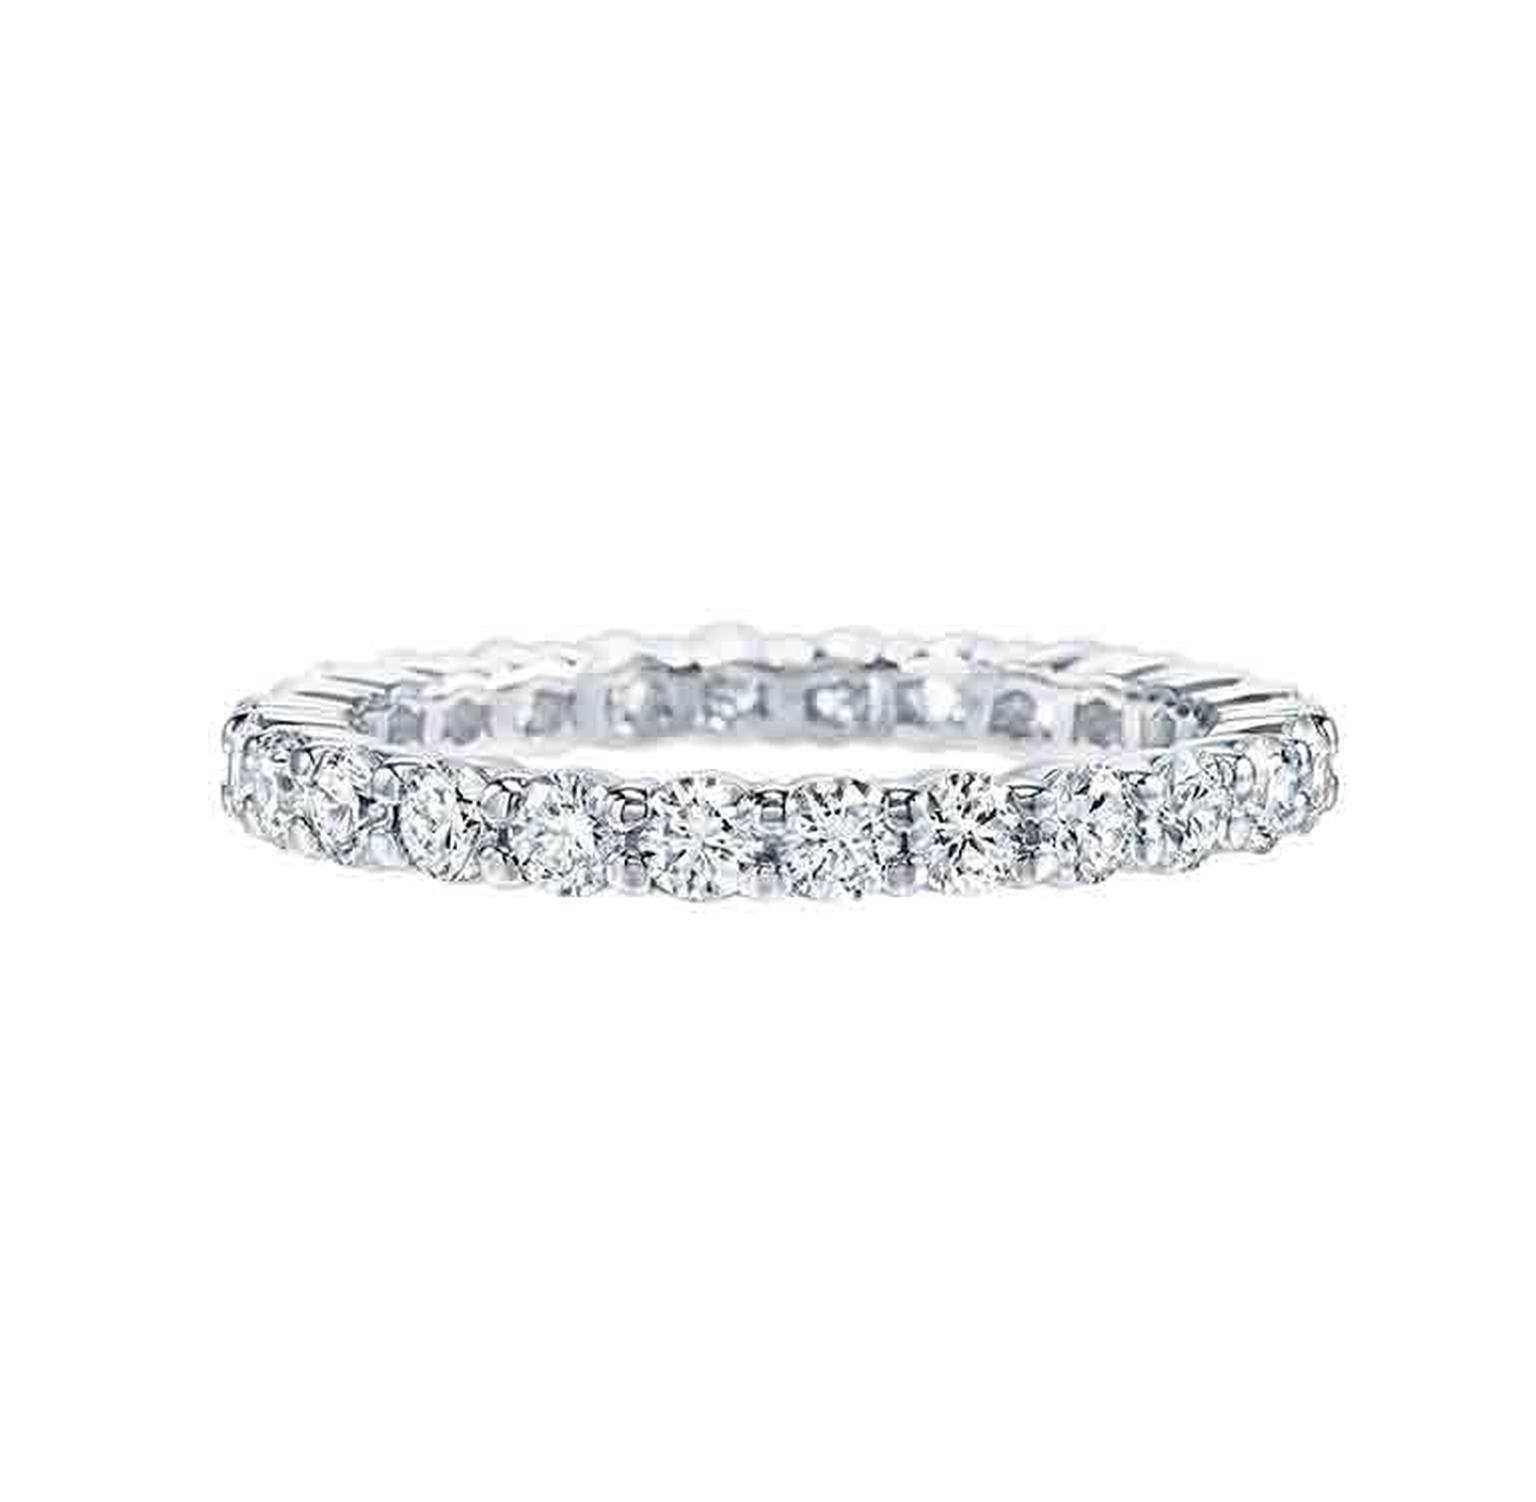 Harry Winston eternity ring in platinum, prong-set with 26 round brilliant diamonds.